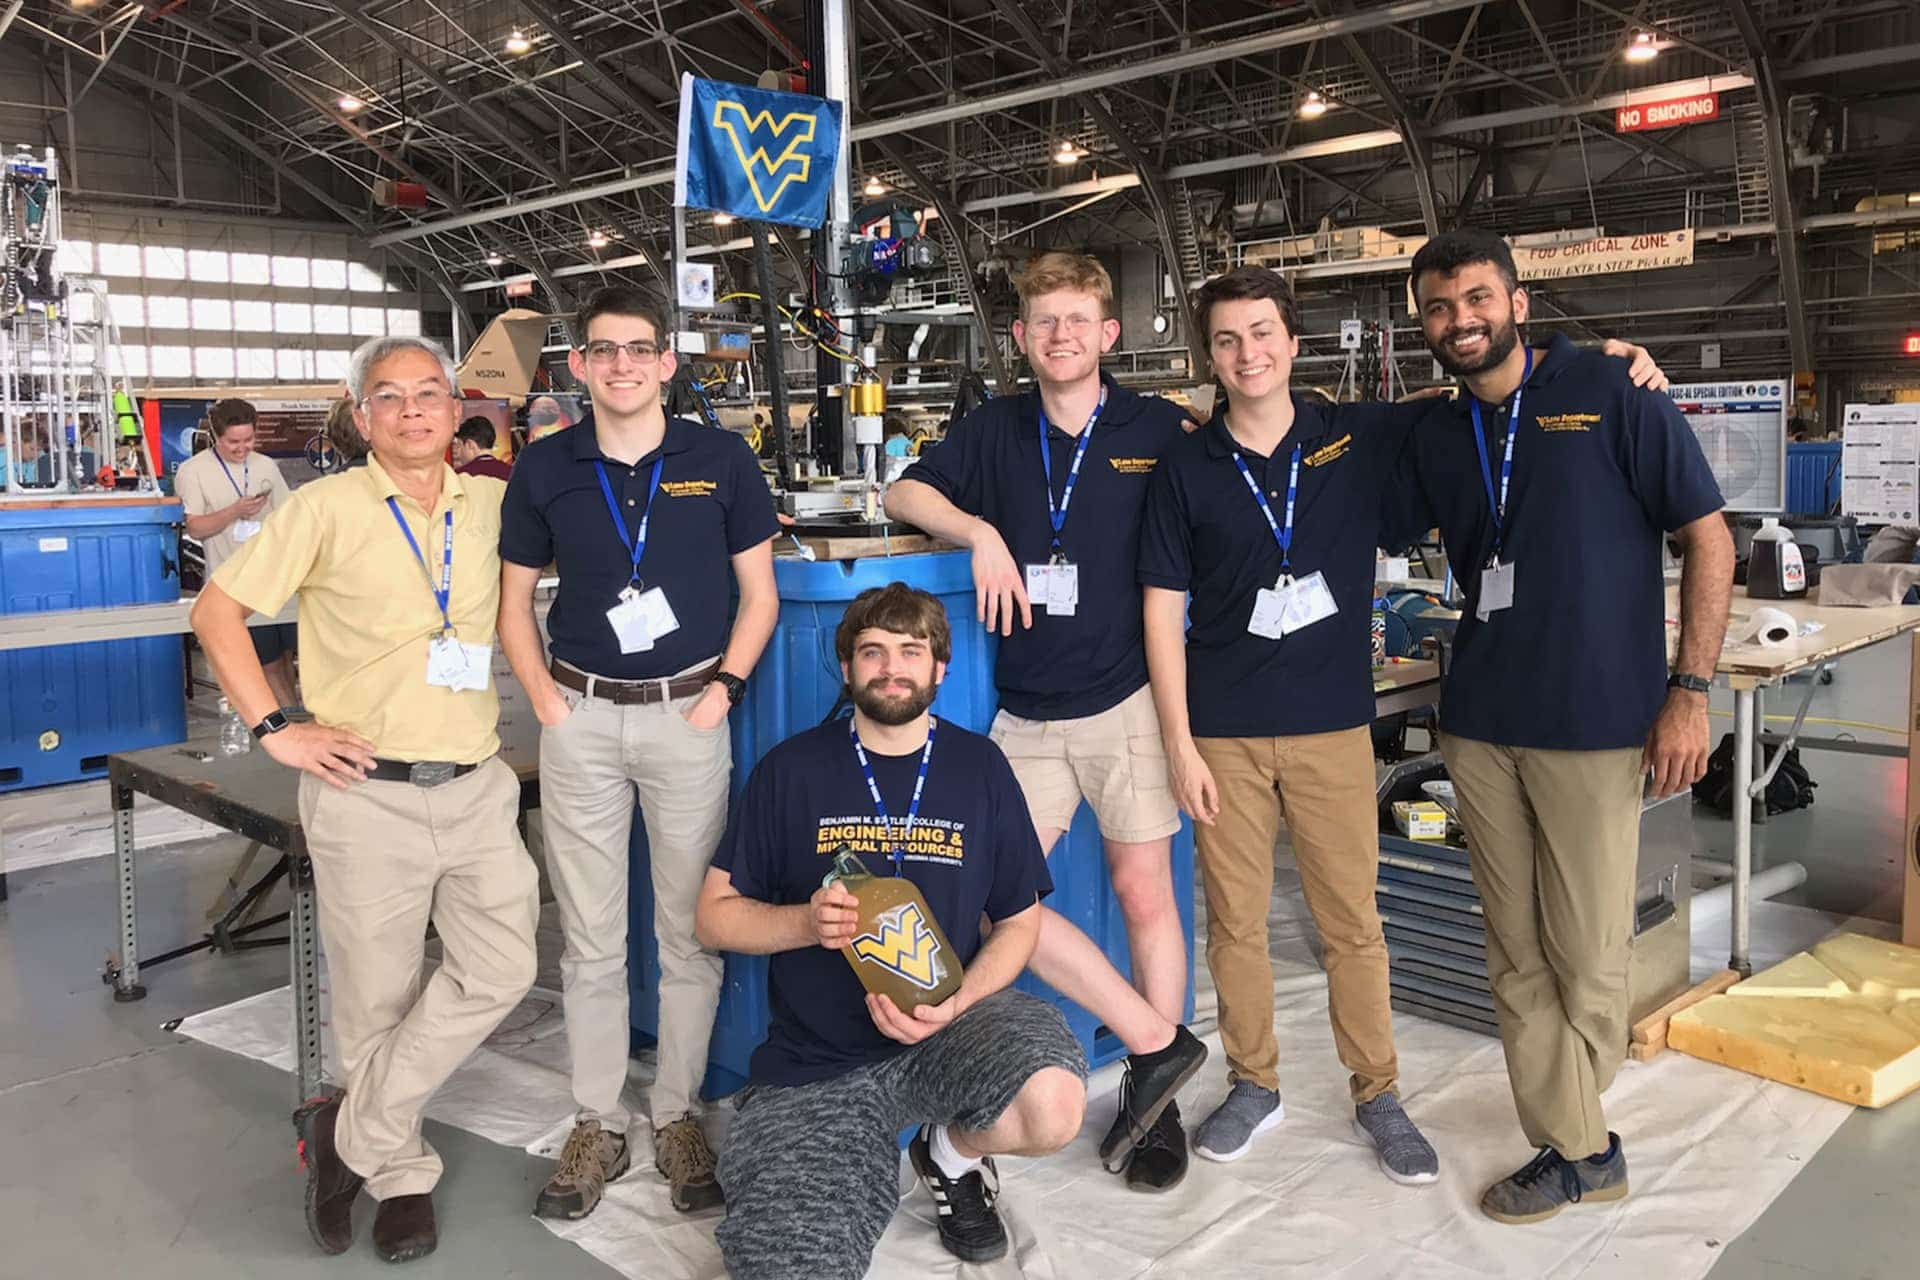 WVU robotics team on top again, wins second NASA competition in 3 years